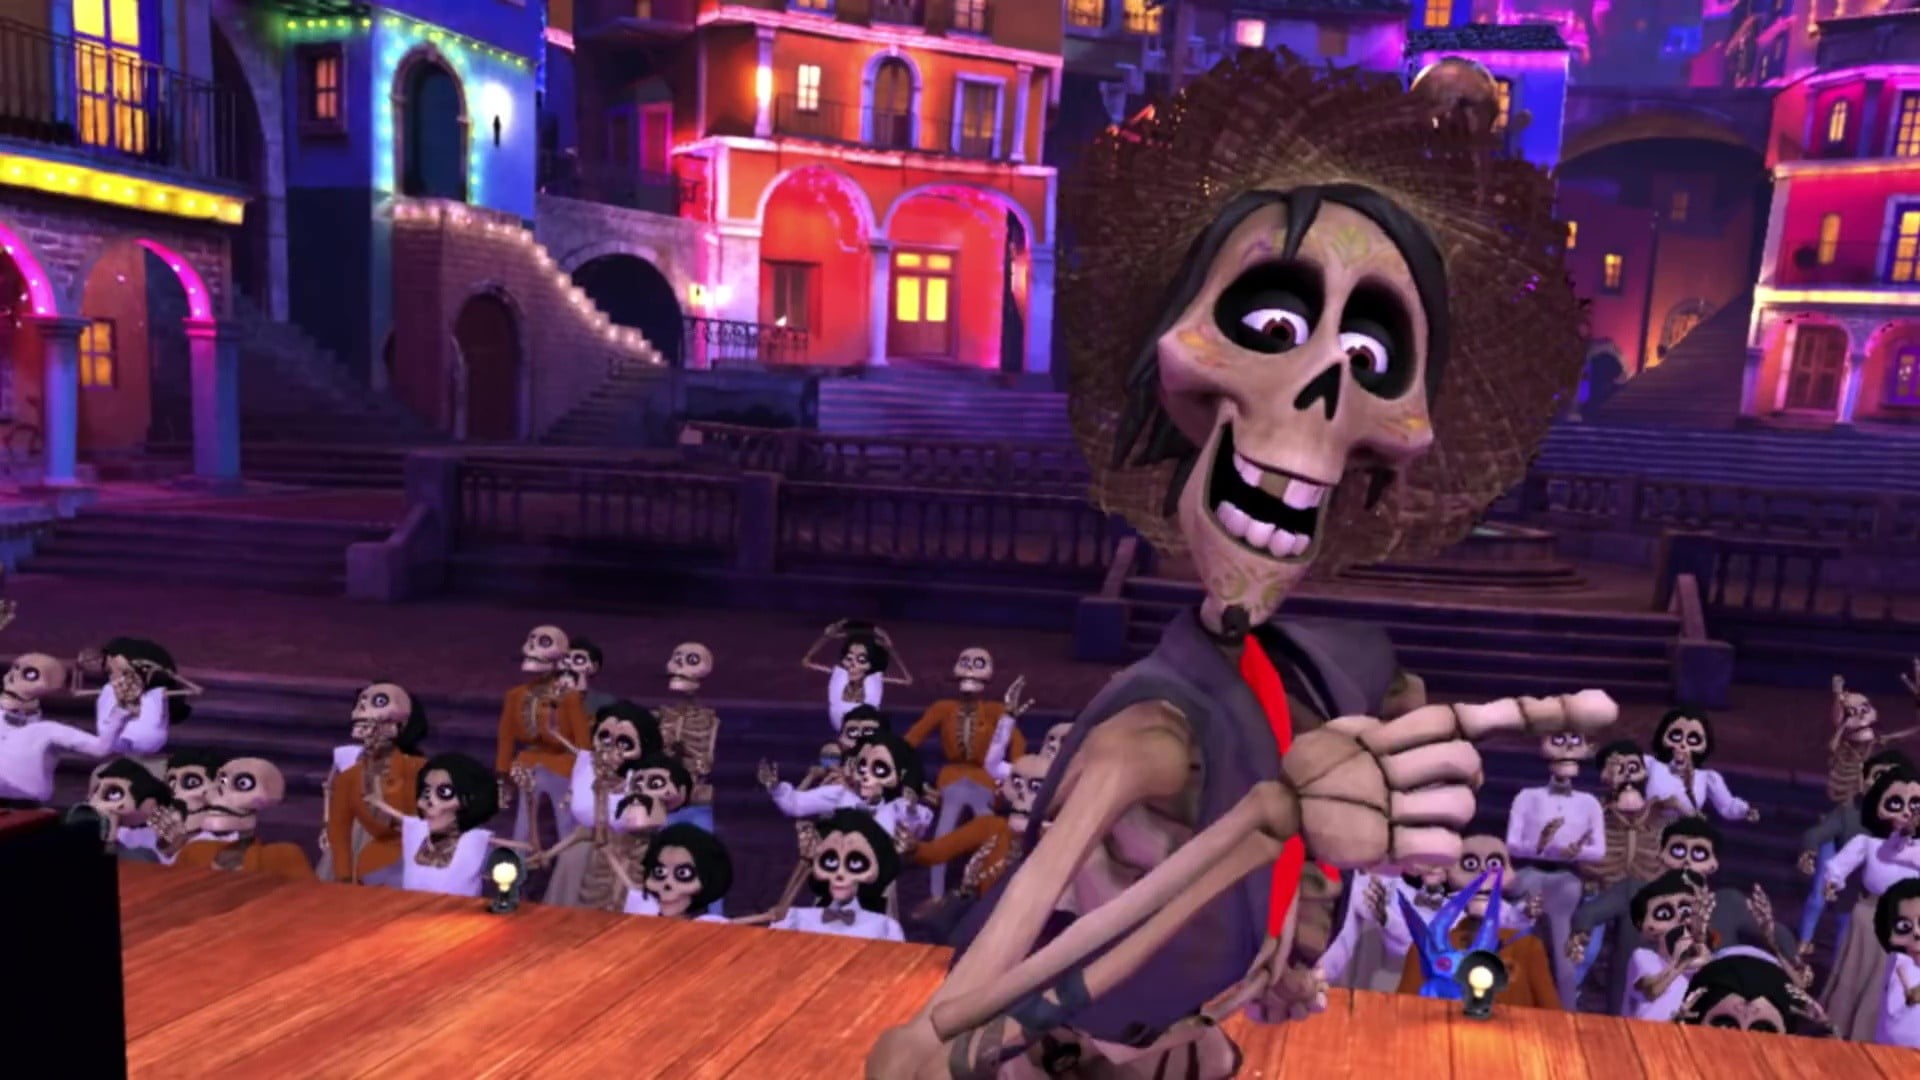 Pixar Plans To Use Techniques Learned From Coco VR For Toy Story 4